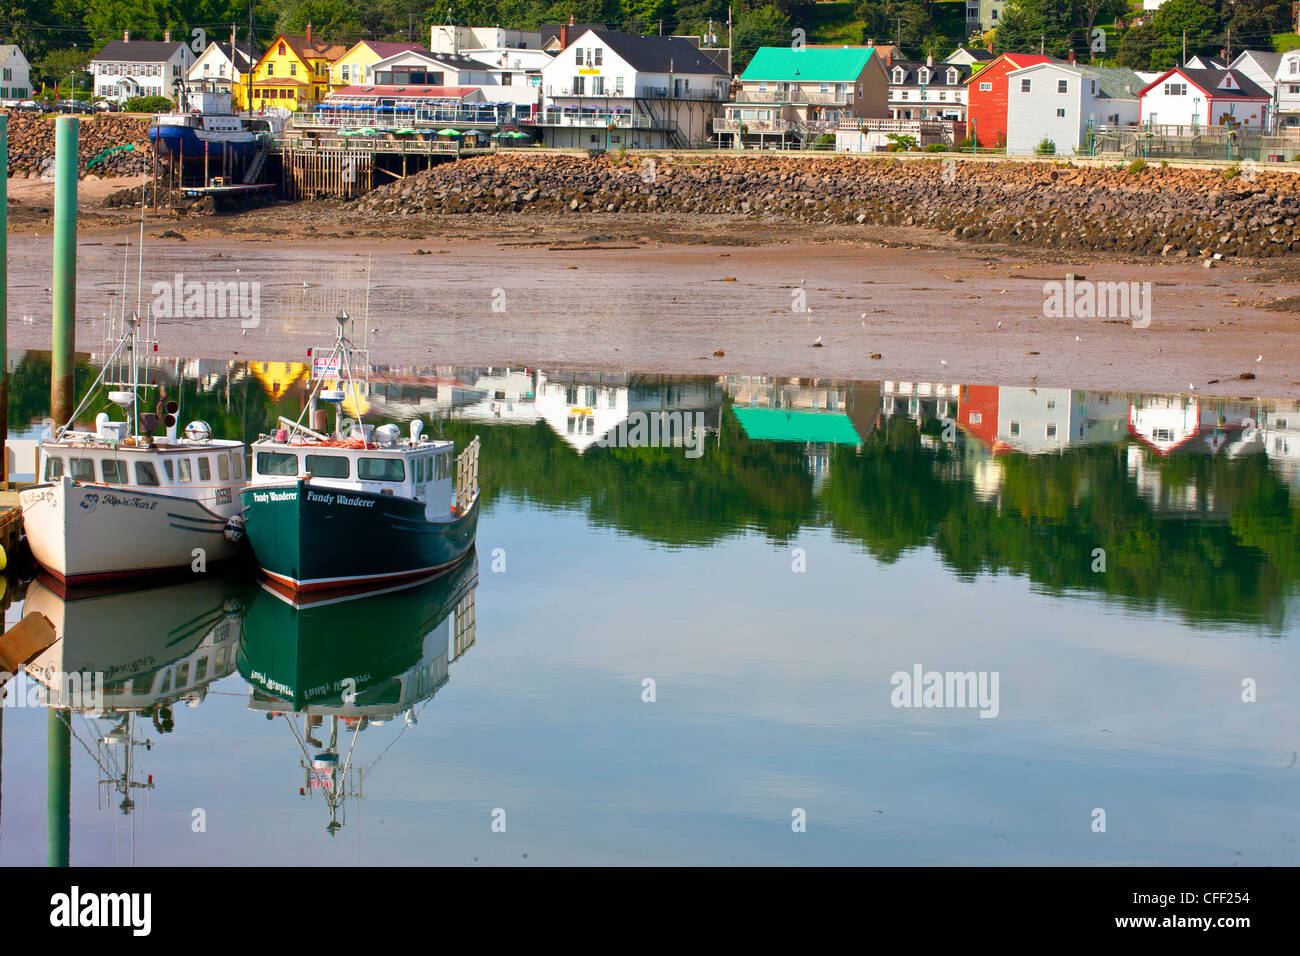 Fishing boats tied up at wharf, Digby, Nova Scotia, Canada Stock Photo